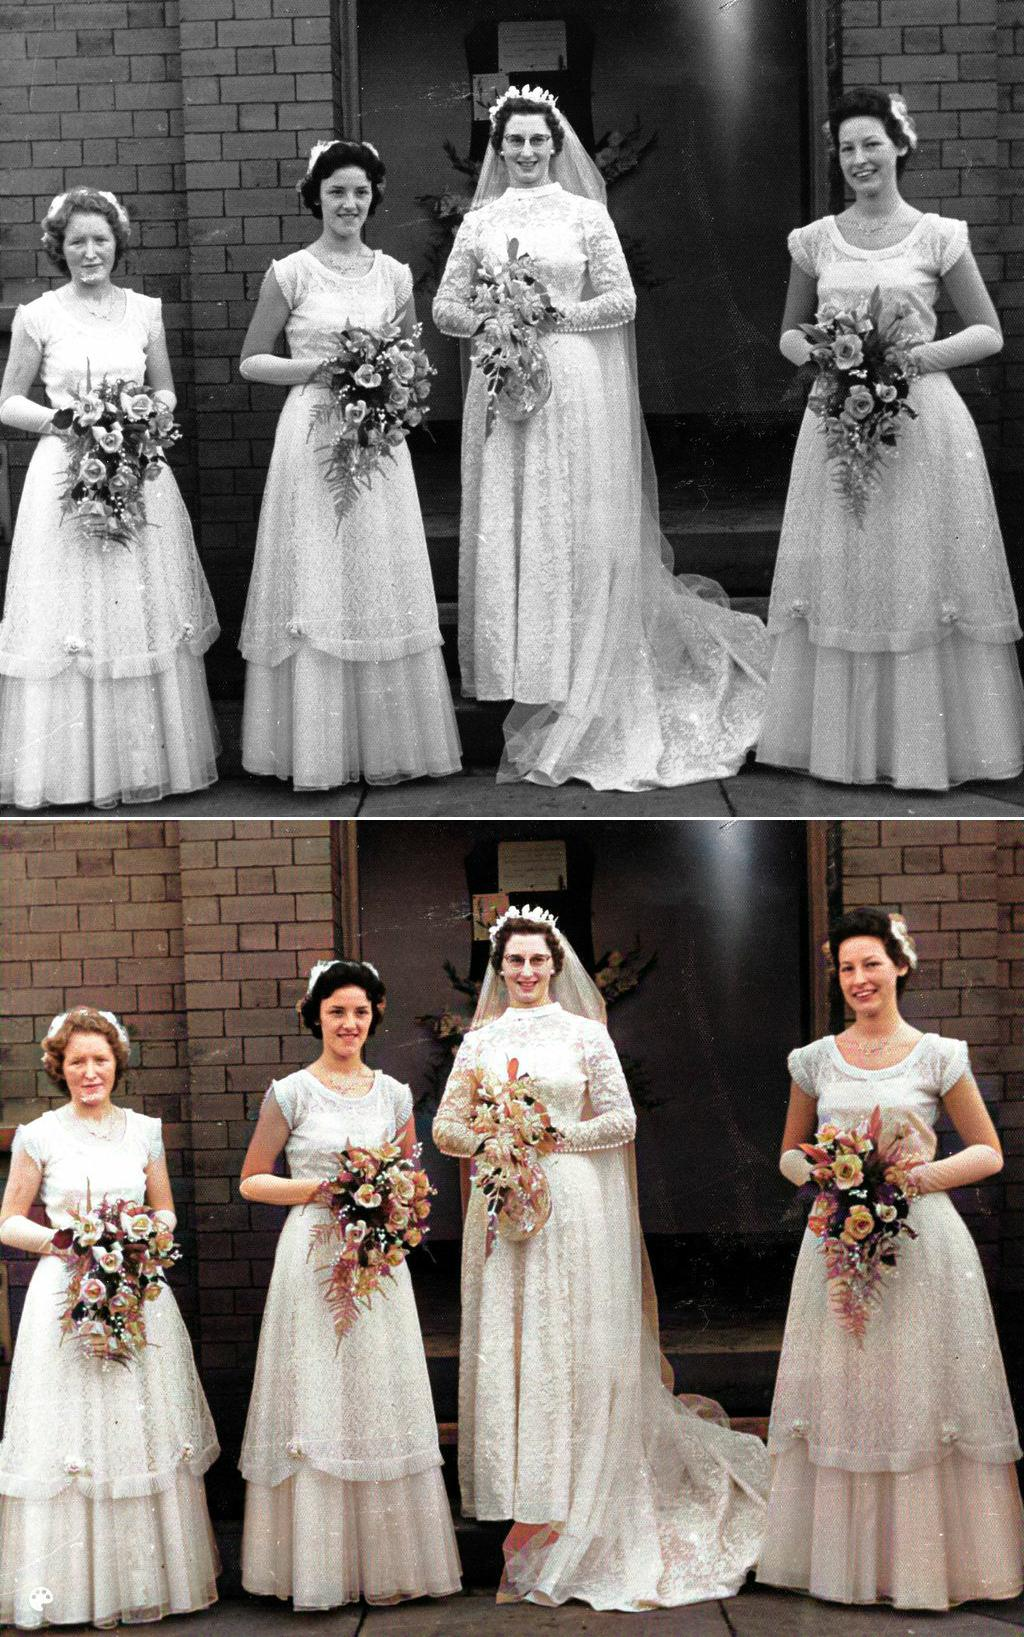 Terry's mother-in-law Anne Hall with her bridesmaids on her wedding day